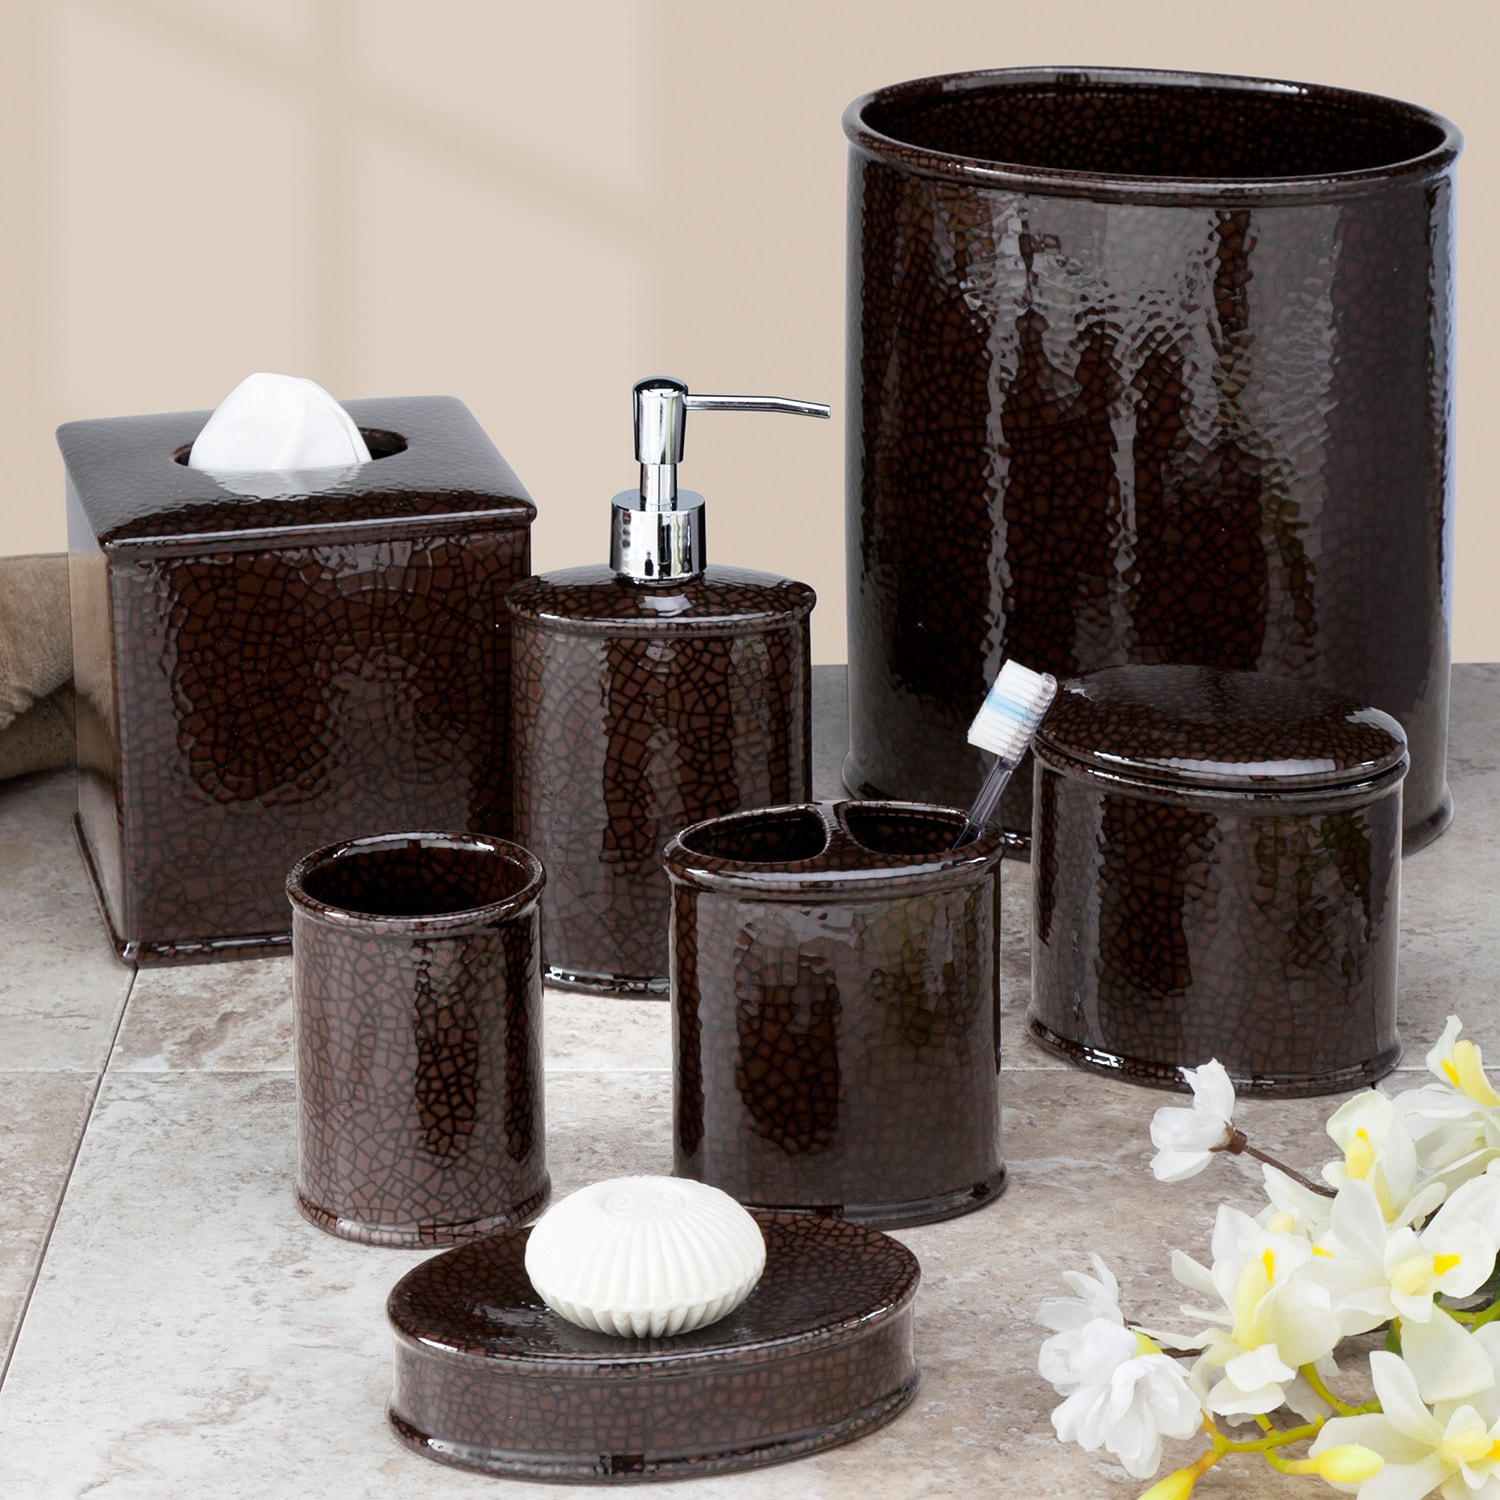 Creative Bath Products, Inc. Crackle Bath Accessory Collection